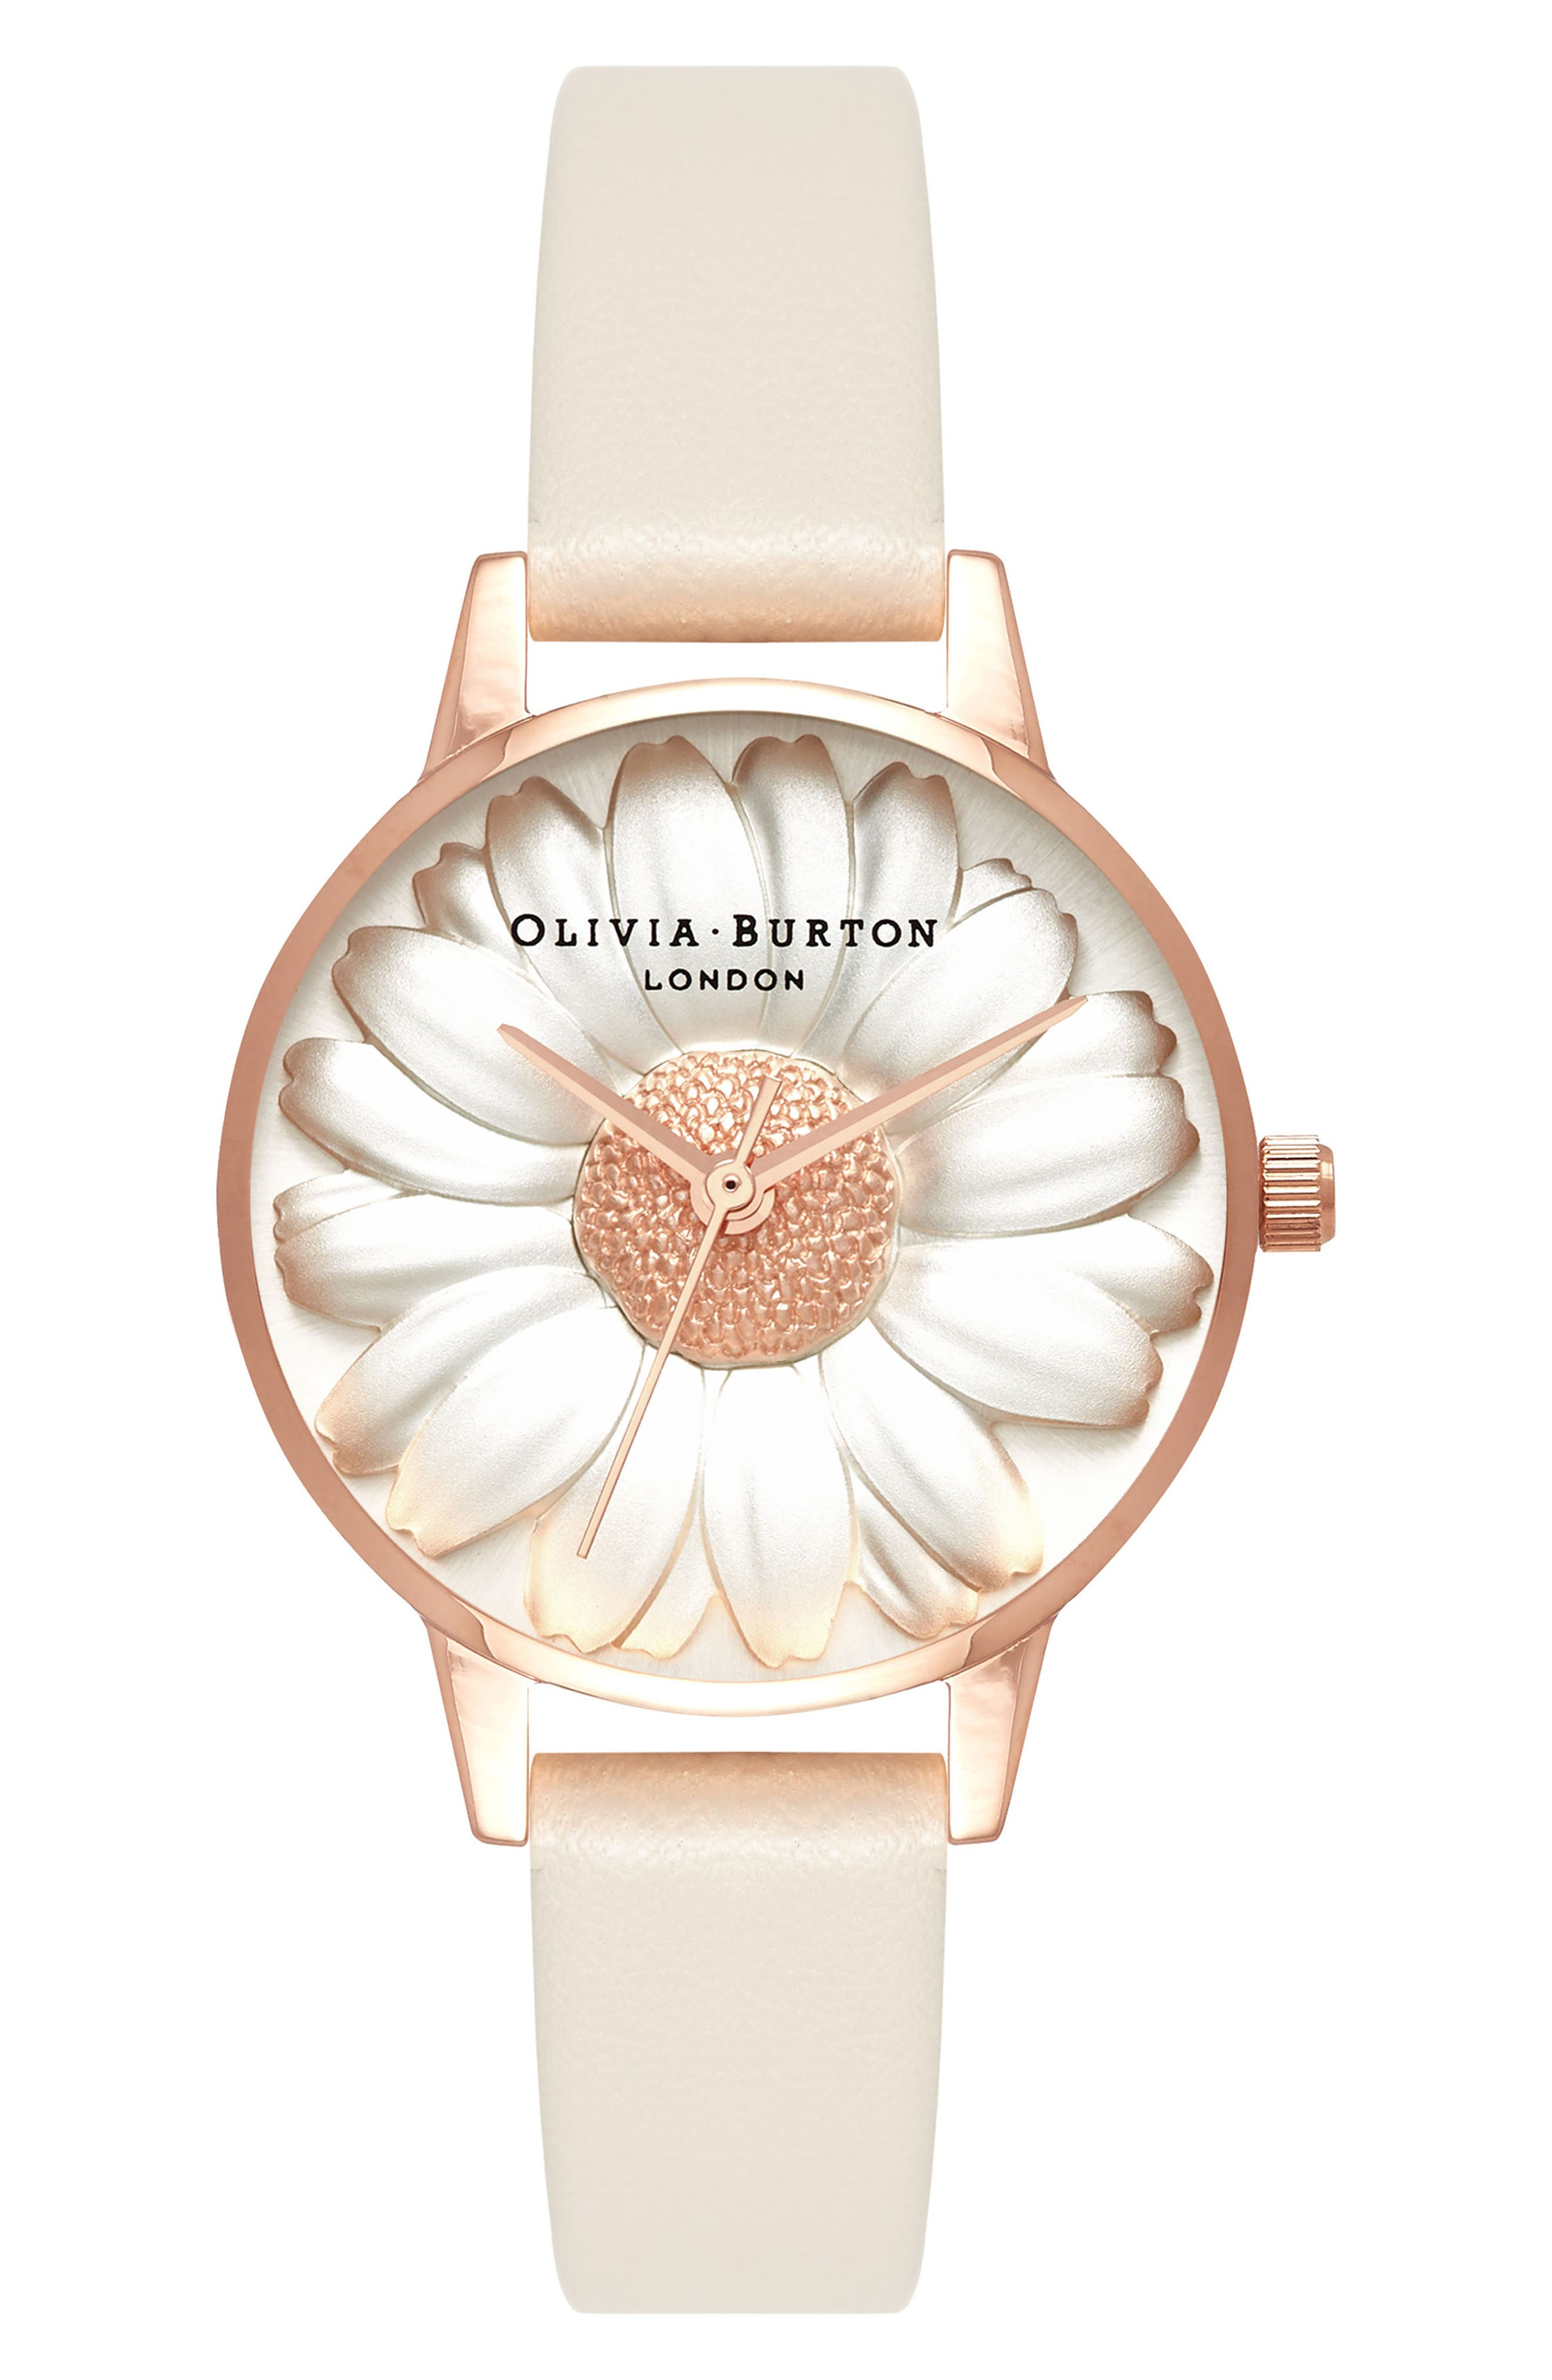 3D Daisey Faux Leather Strap Watch, 30mm,                         Main,                         color, NUDE/ DAISY/ ROSE GOLD